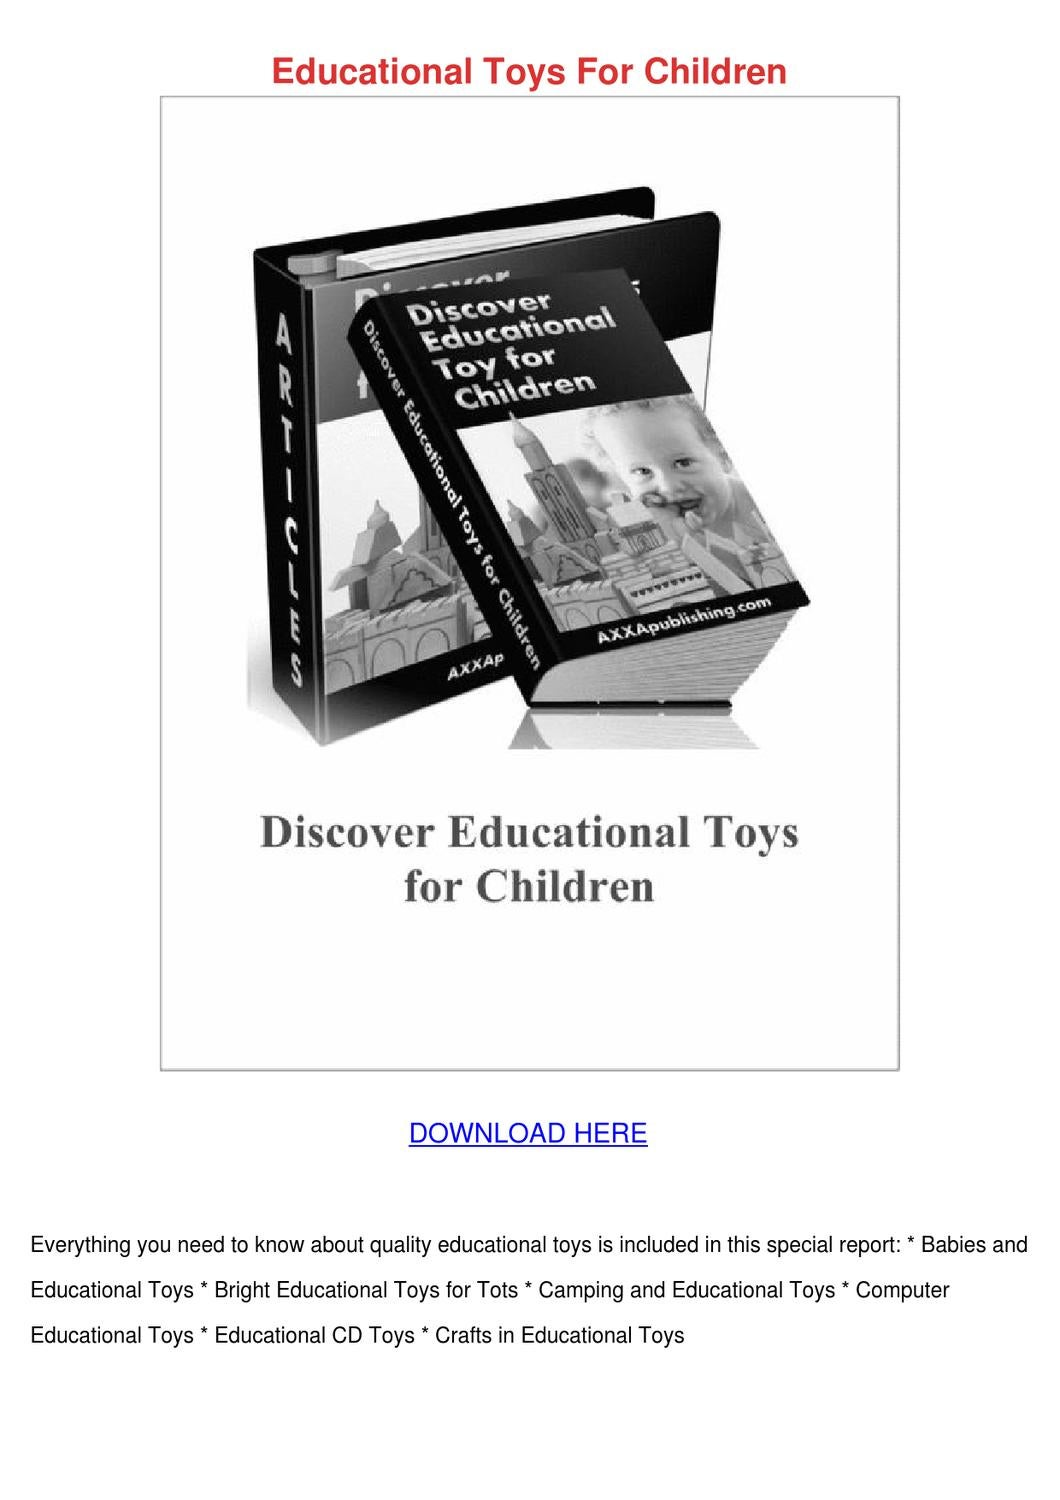 Toys For Tots Logo Pdf : Educational toys for children by kaihawley issuu